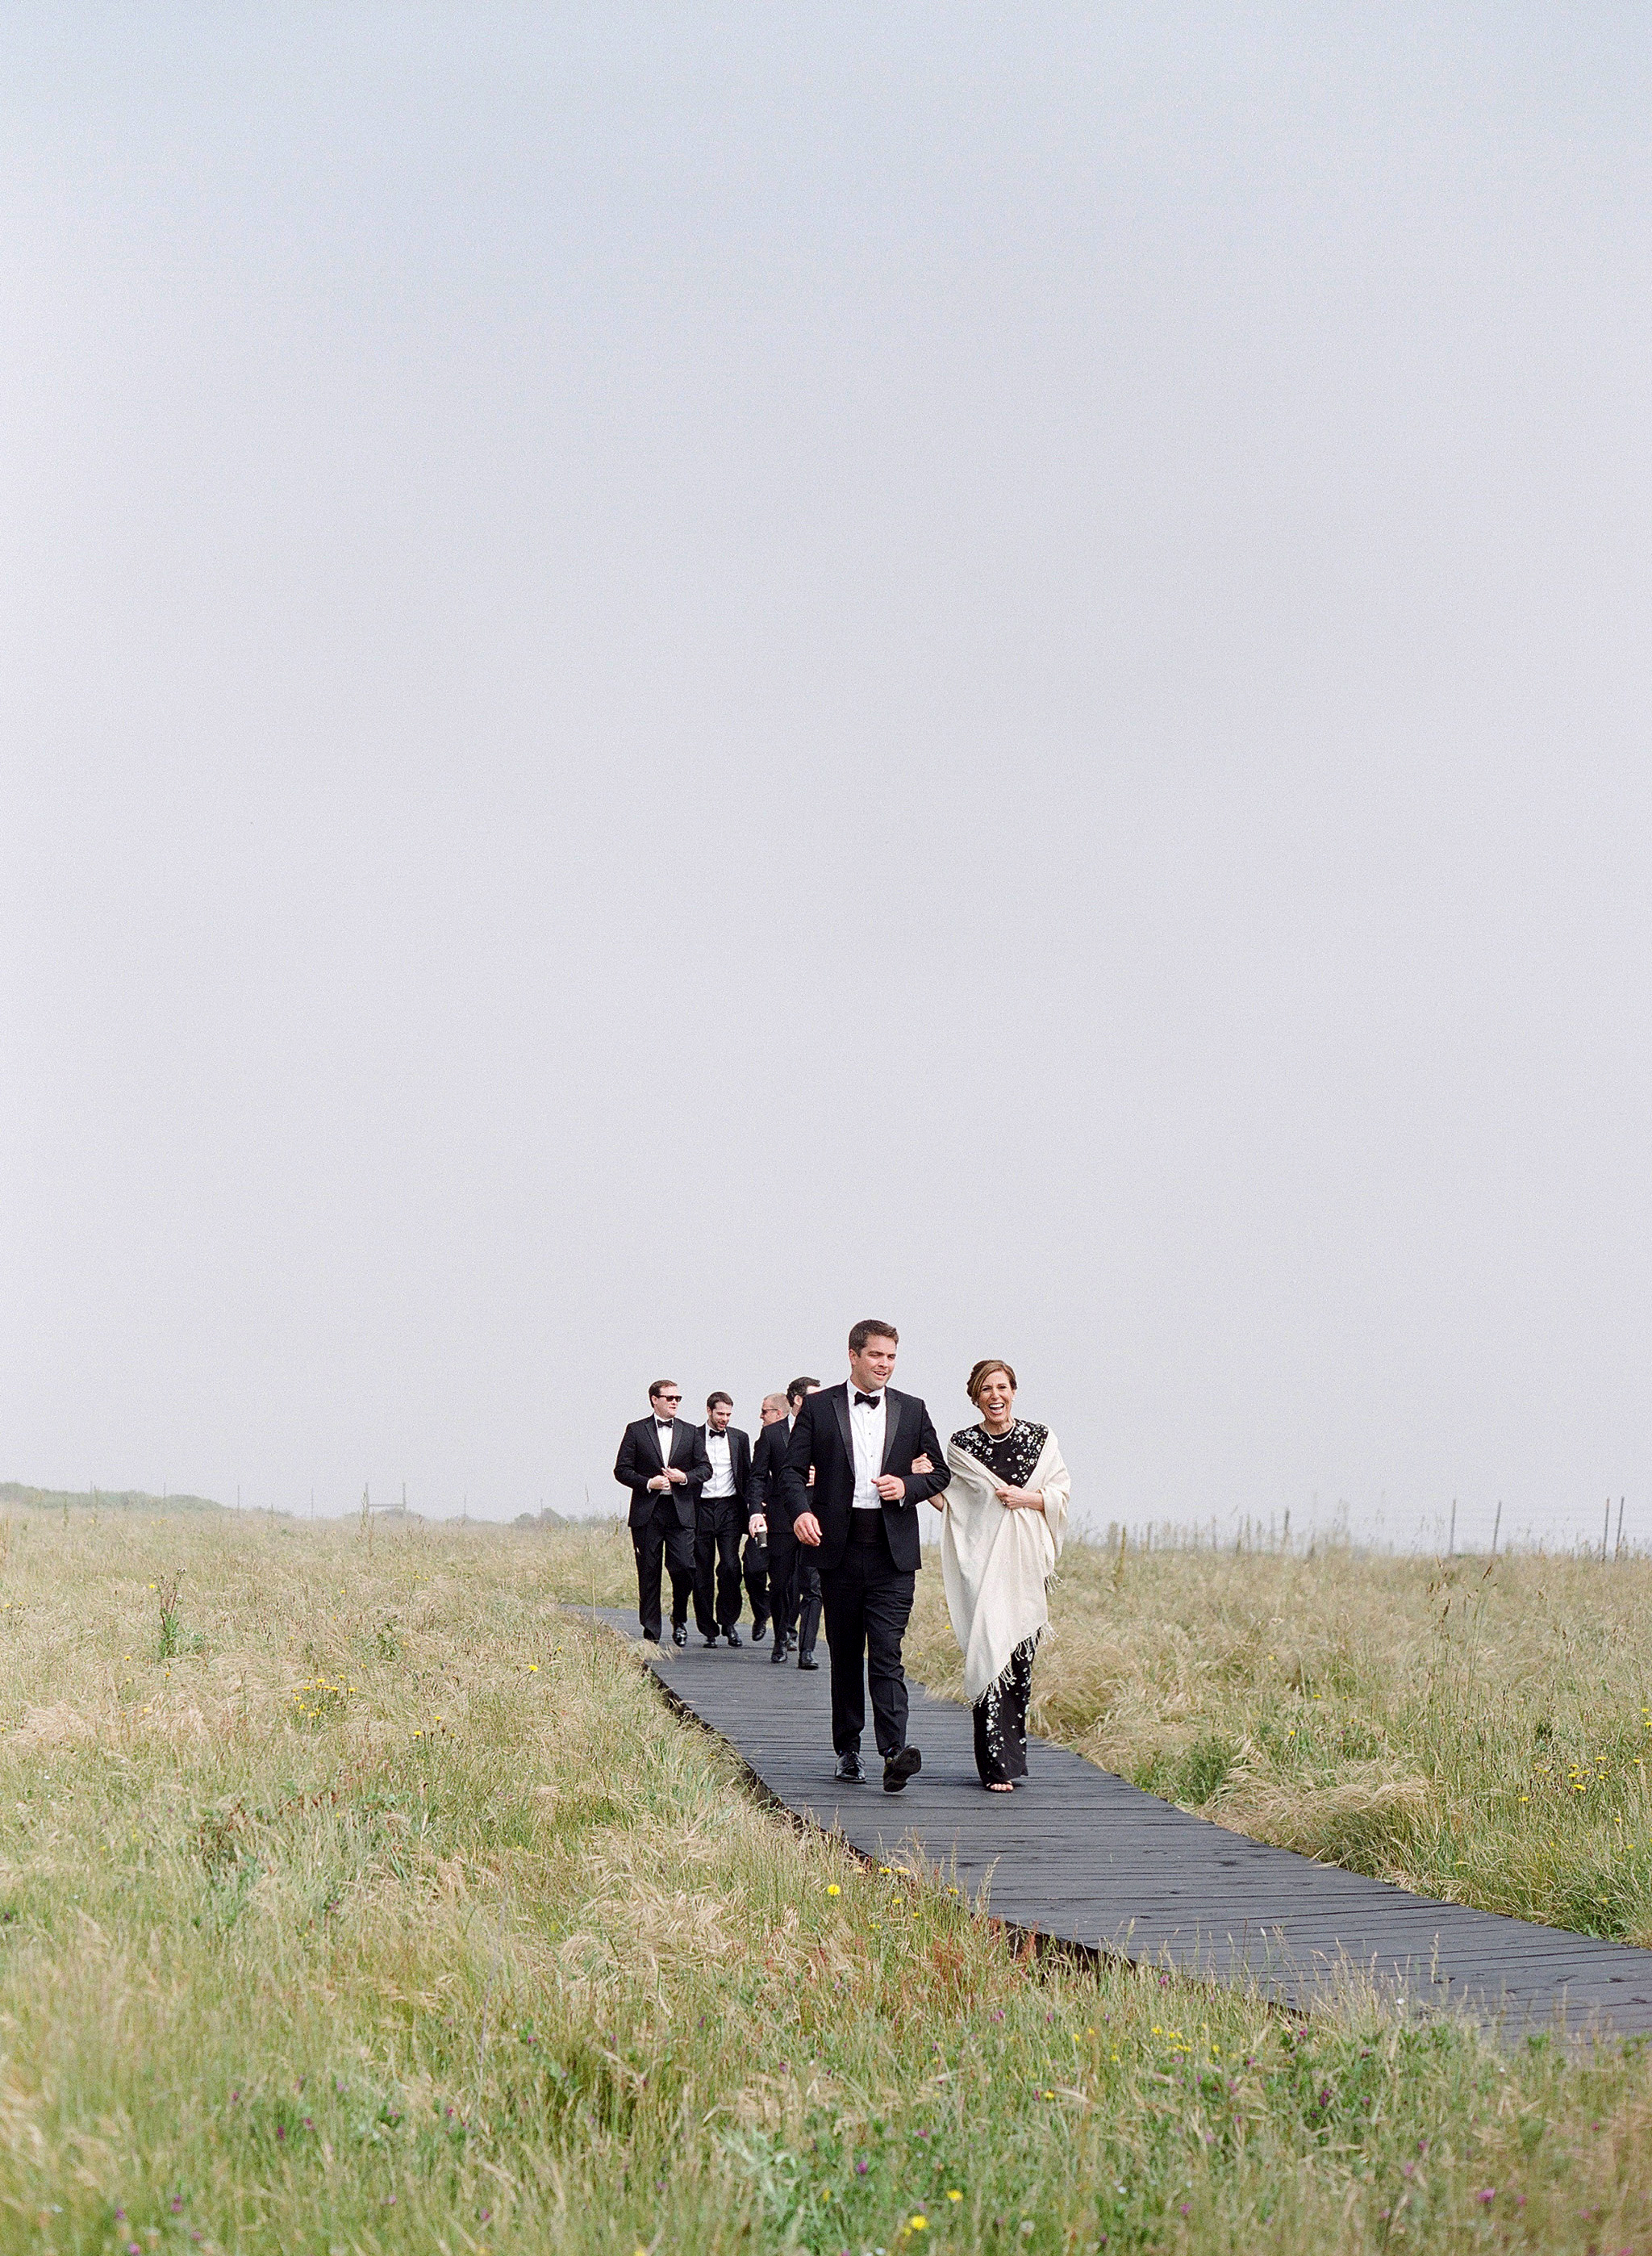 whitney zach wedding guests walking down wooden path in field